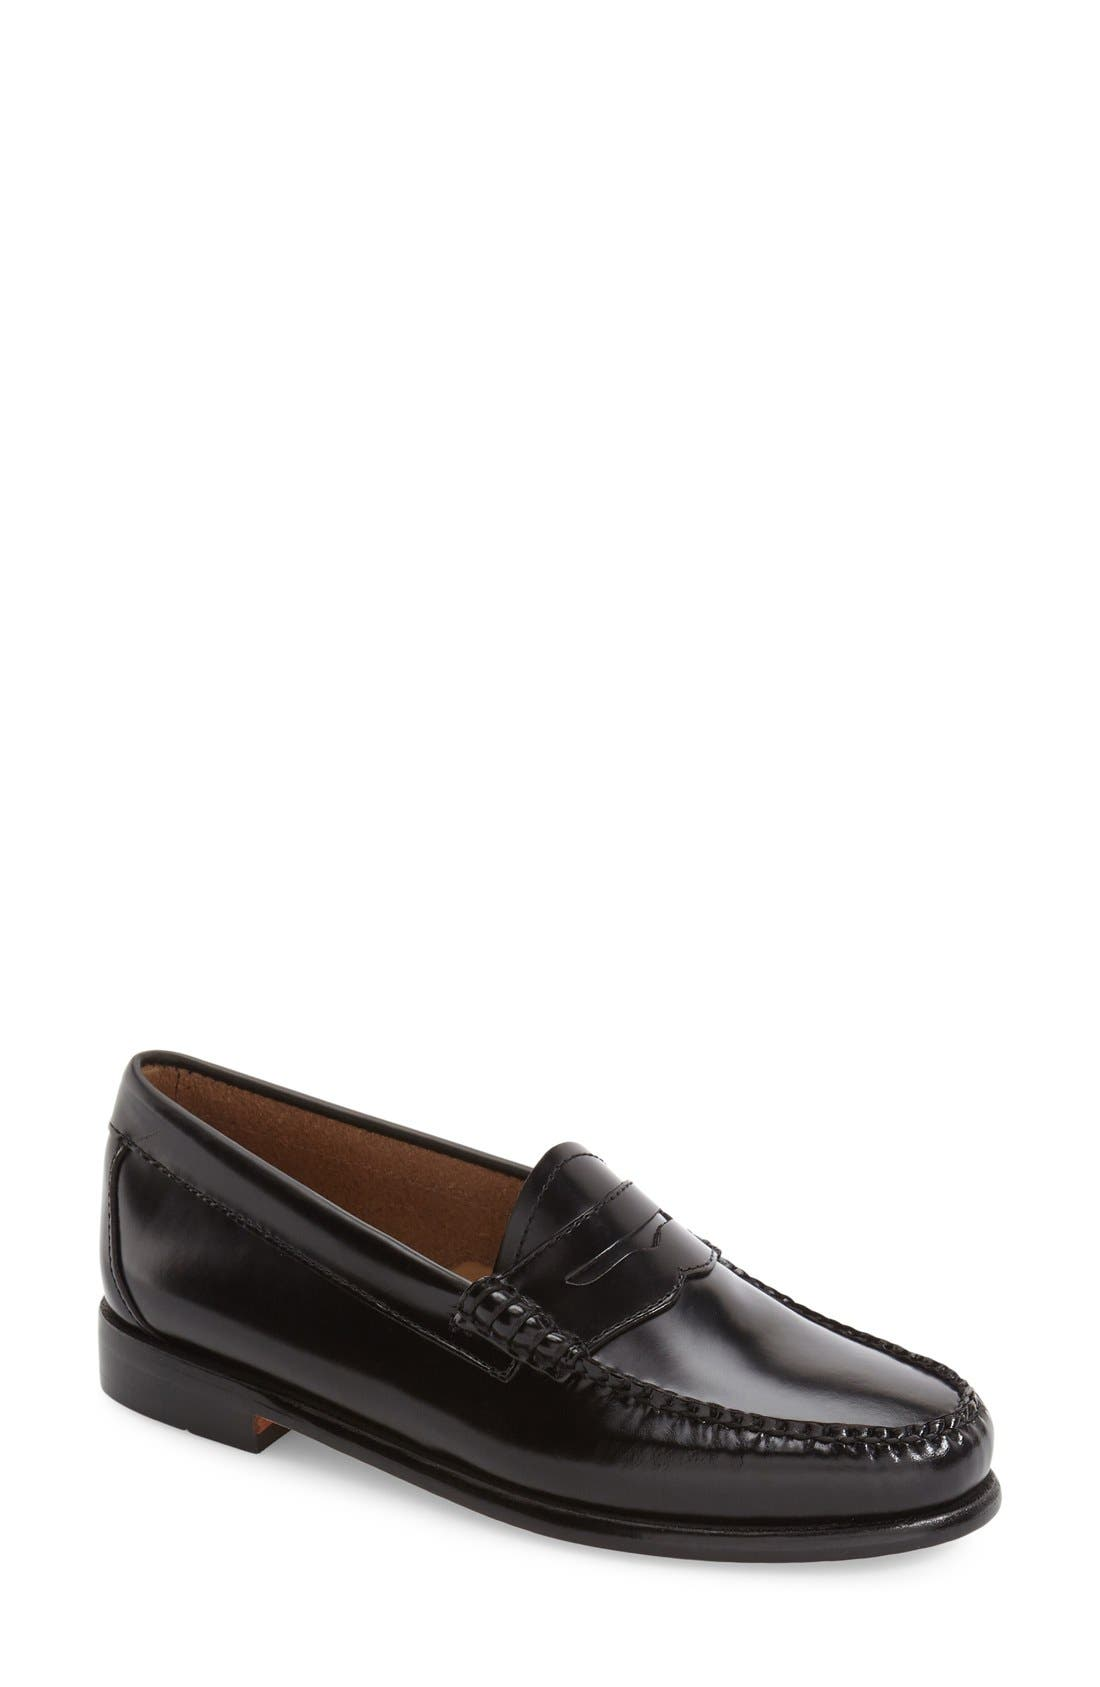 'Whitney' Loafer,                             Main thumbnail 20, color,